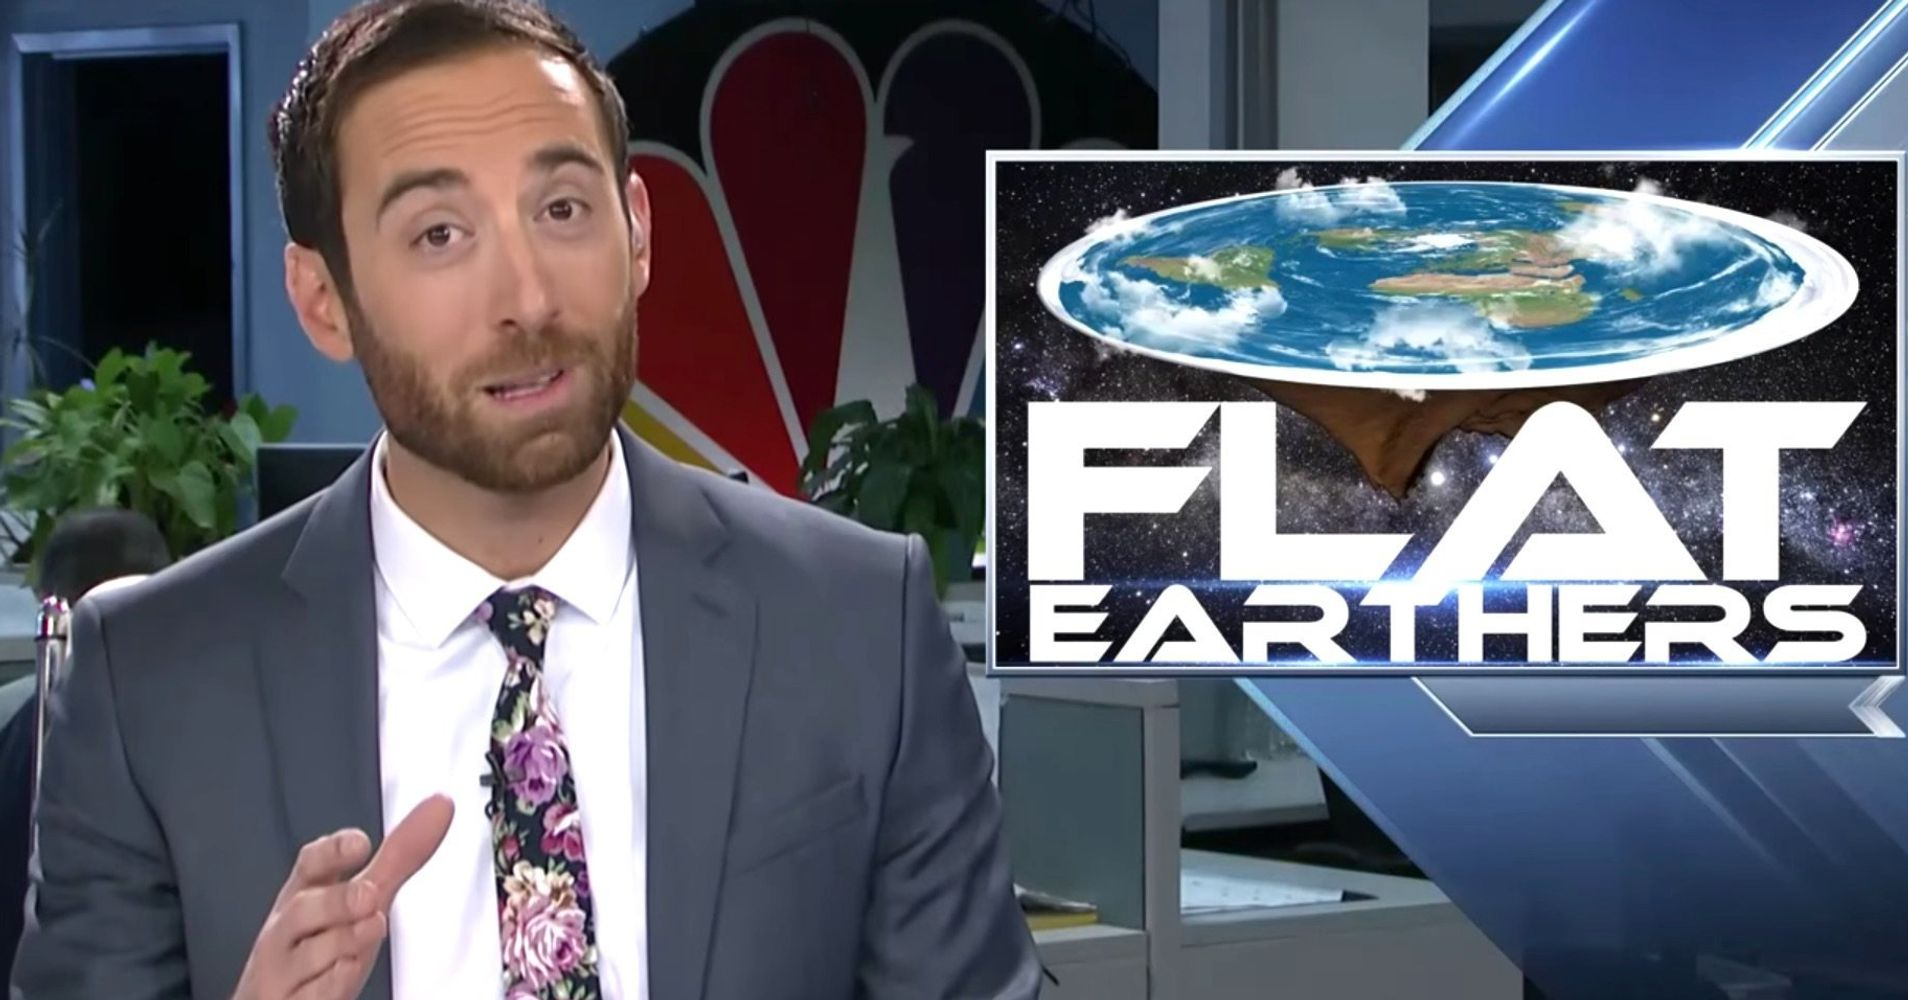 TV Meteorologist Has Absolutely Had It With The Flat-Earth Movement